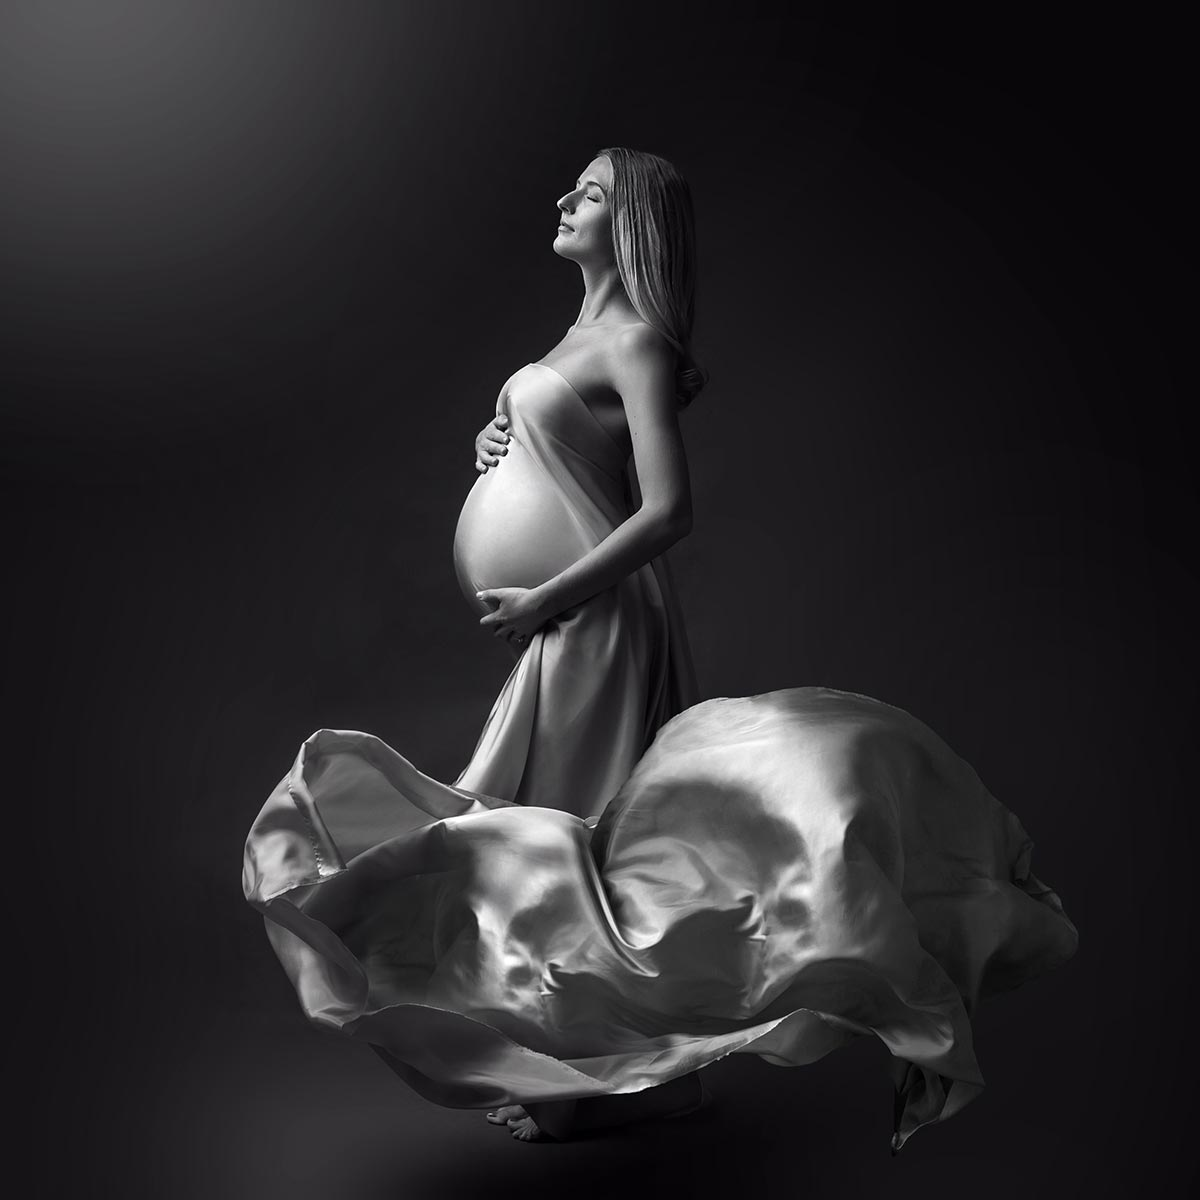 voluminous fabric pregnant woman standing for maternity portrait